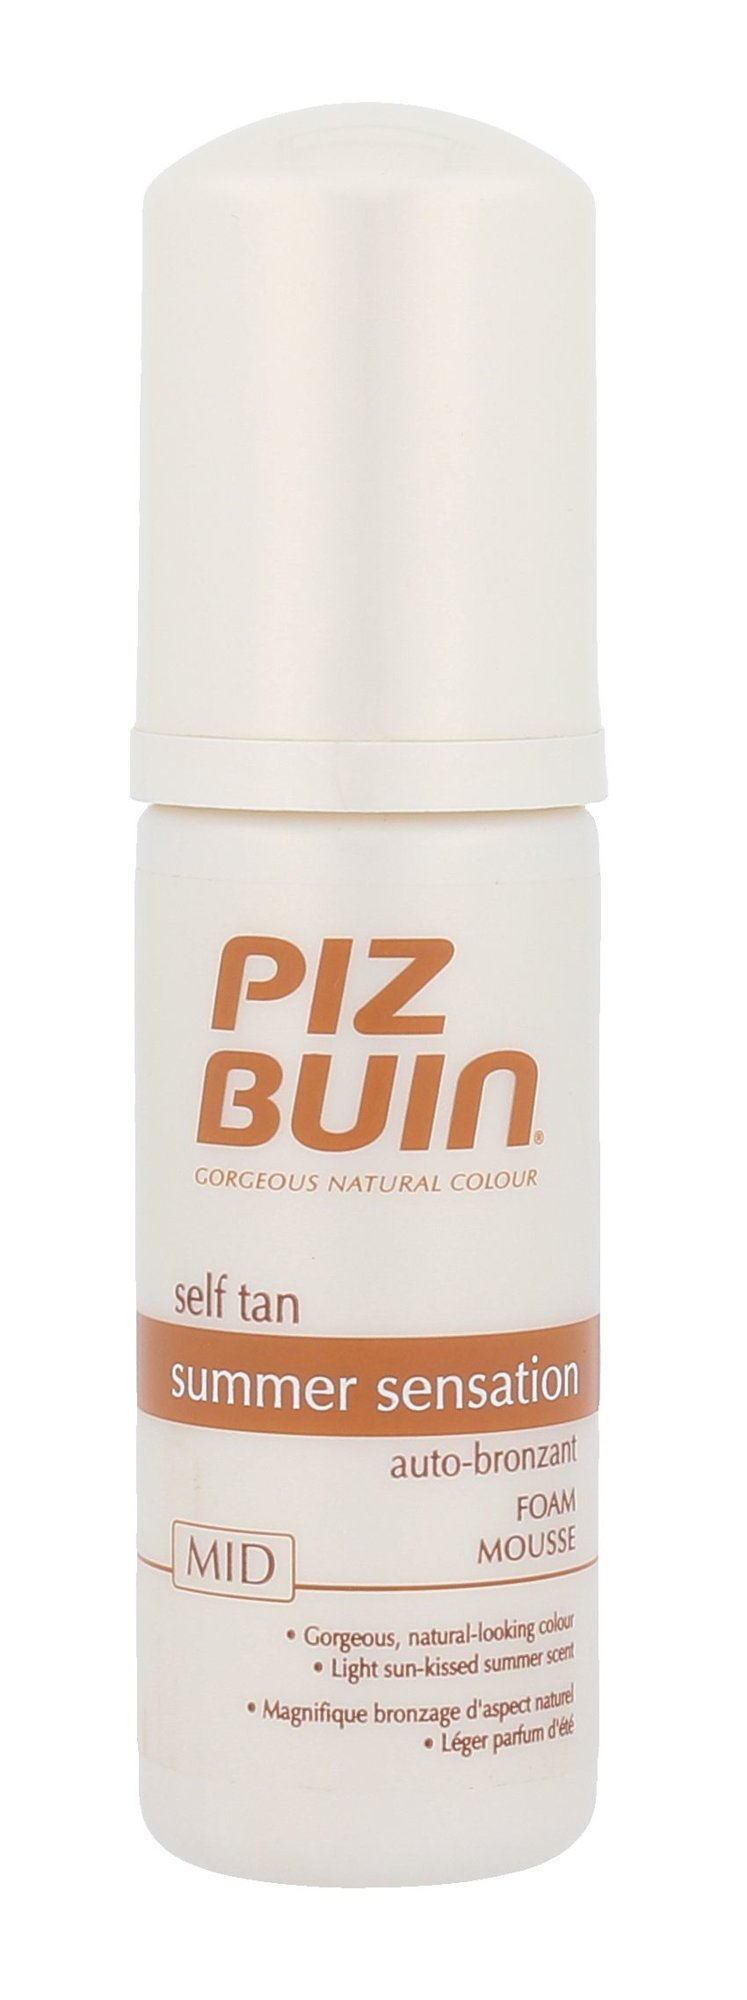 PIZ BUIN Summer Sensation Cosmetic 50ml